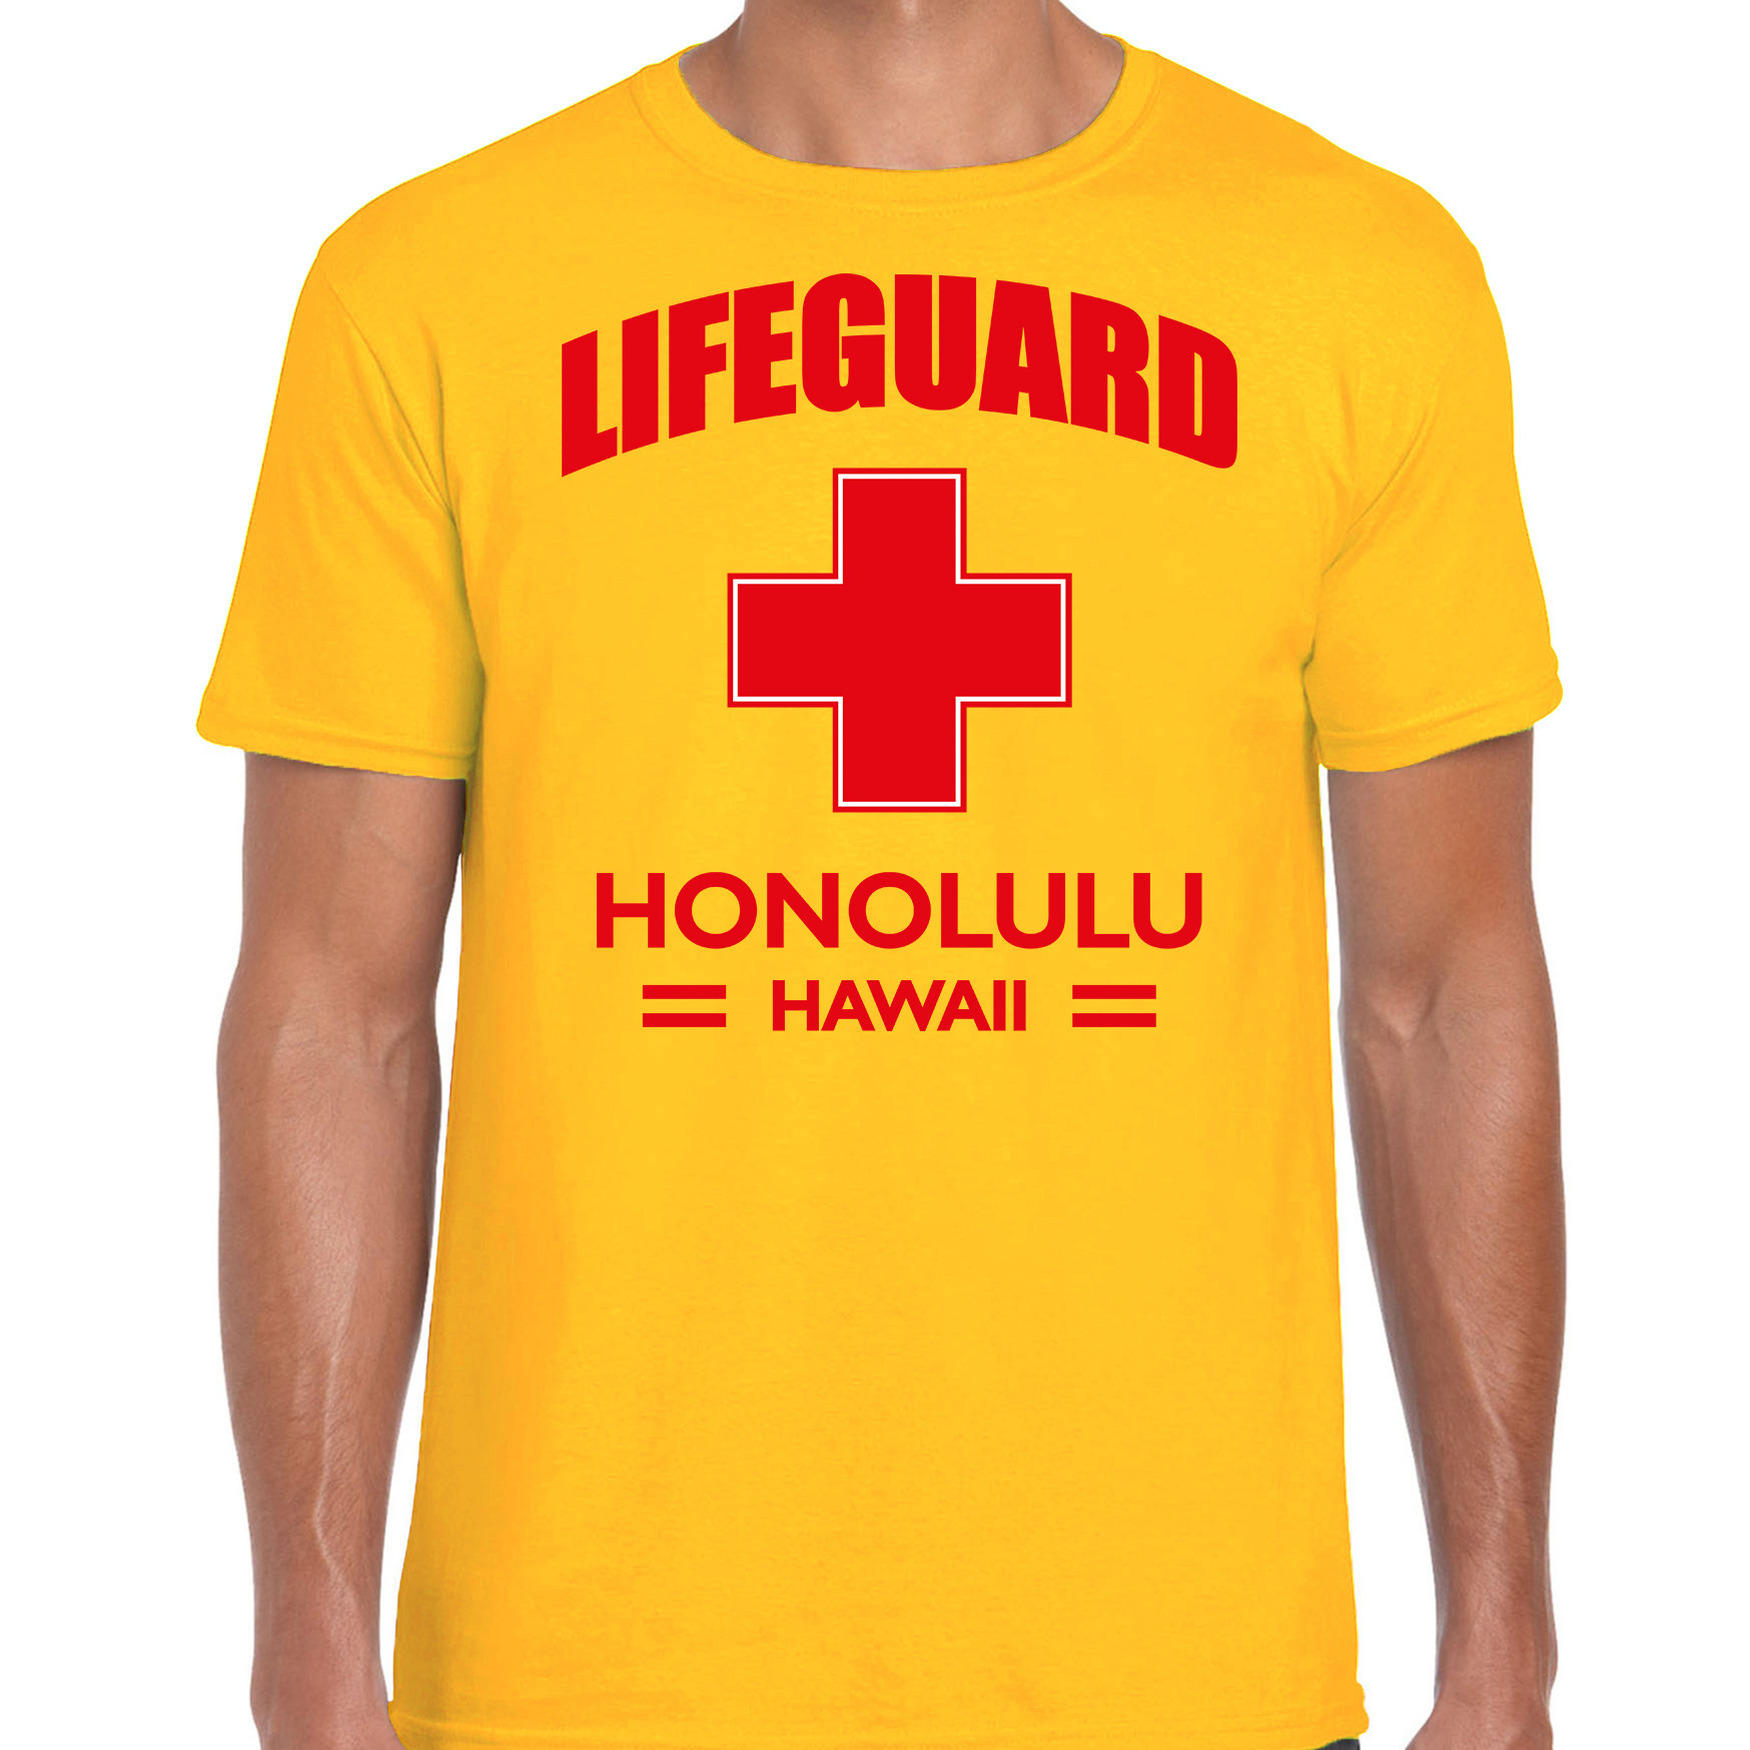 Lifeguard/ strandwacht verkleed t-shirt - shirt Lifeguard Honolulu Hawaii geel voor heren